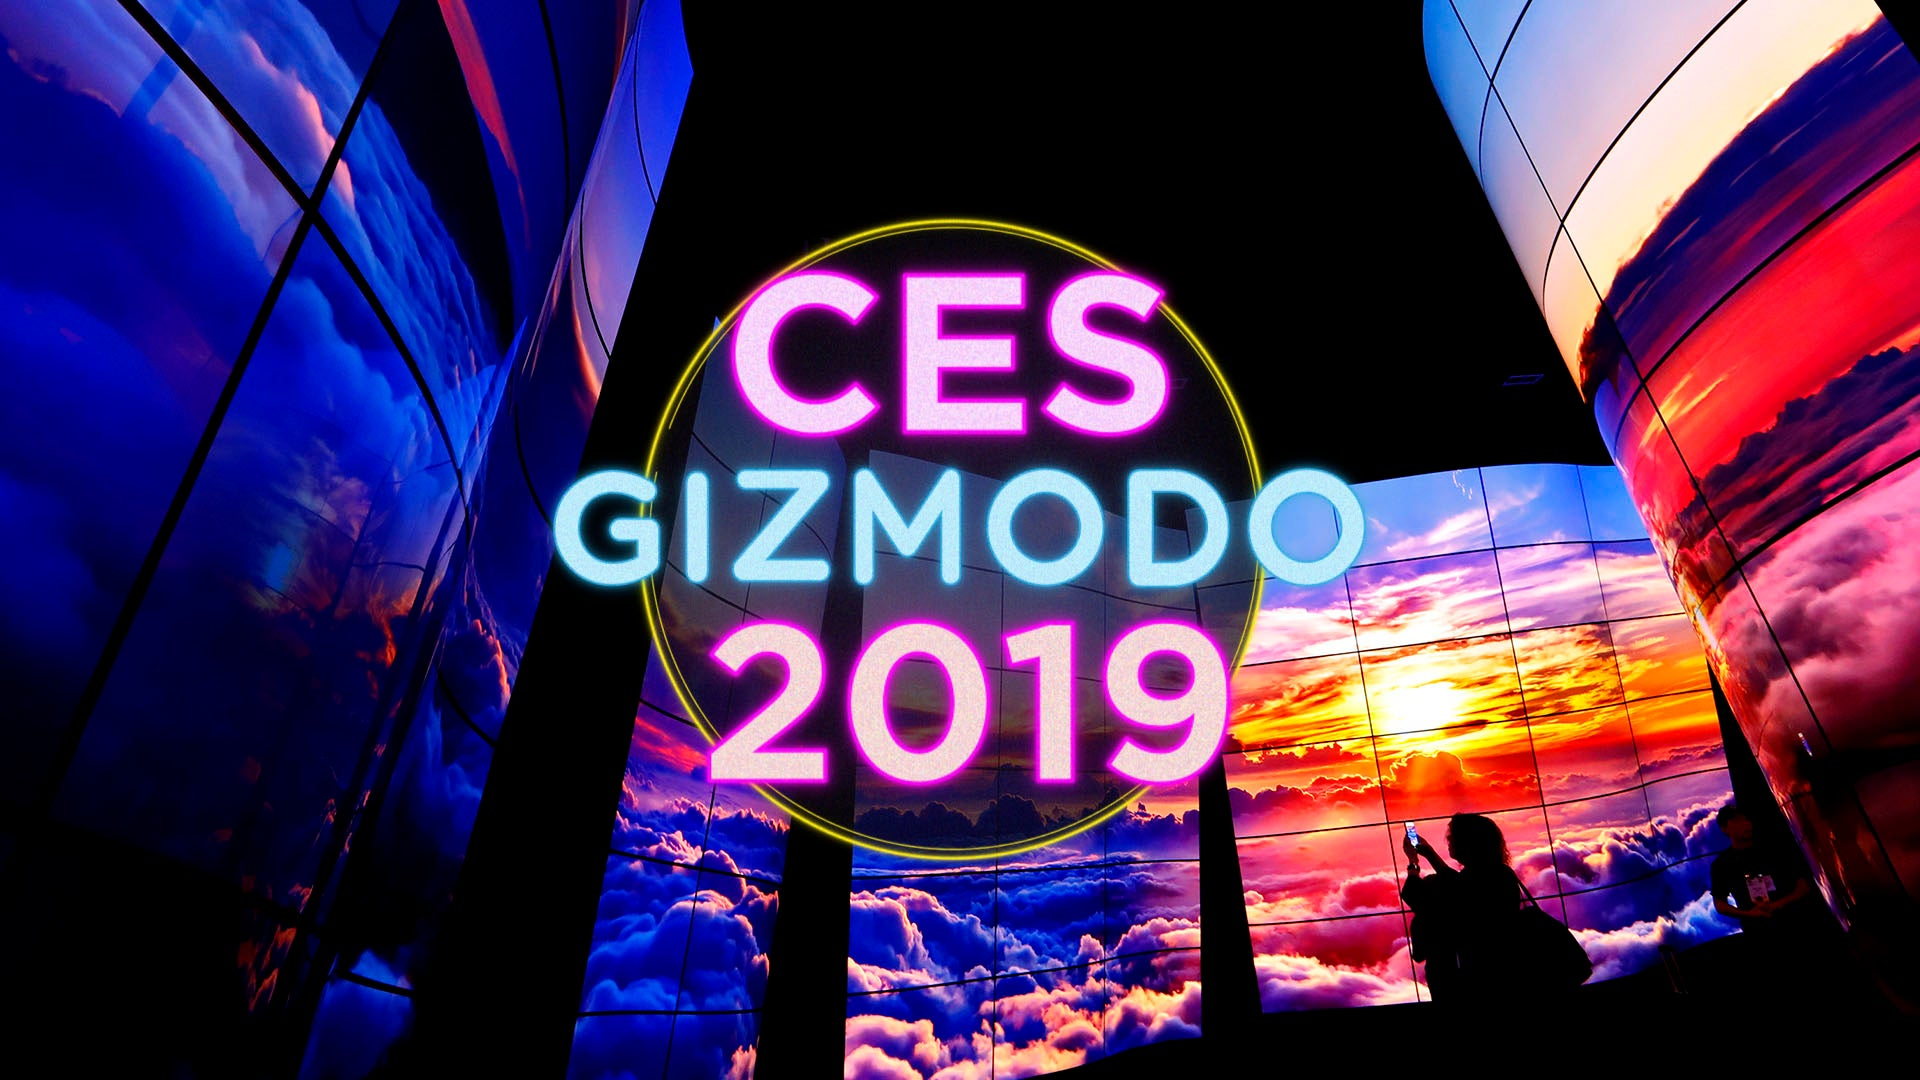 CES 2019 Is Coming: Here's What To Expect